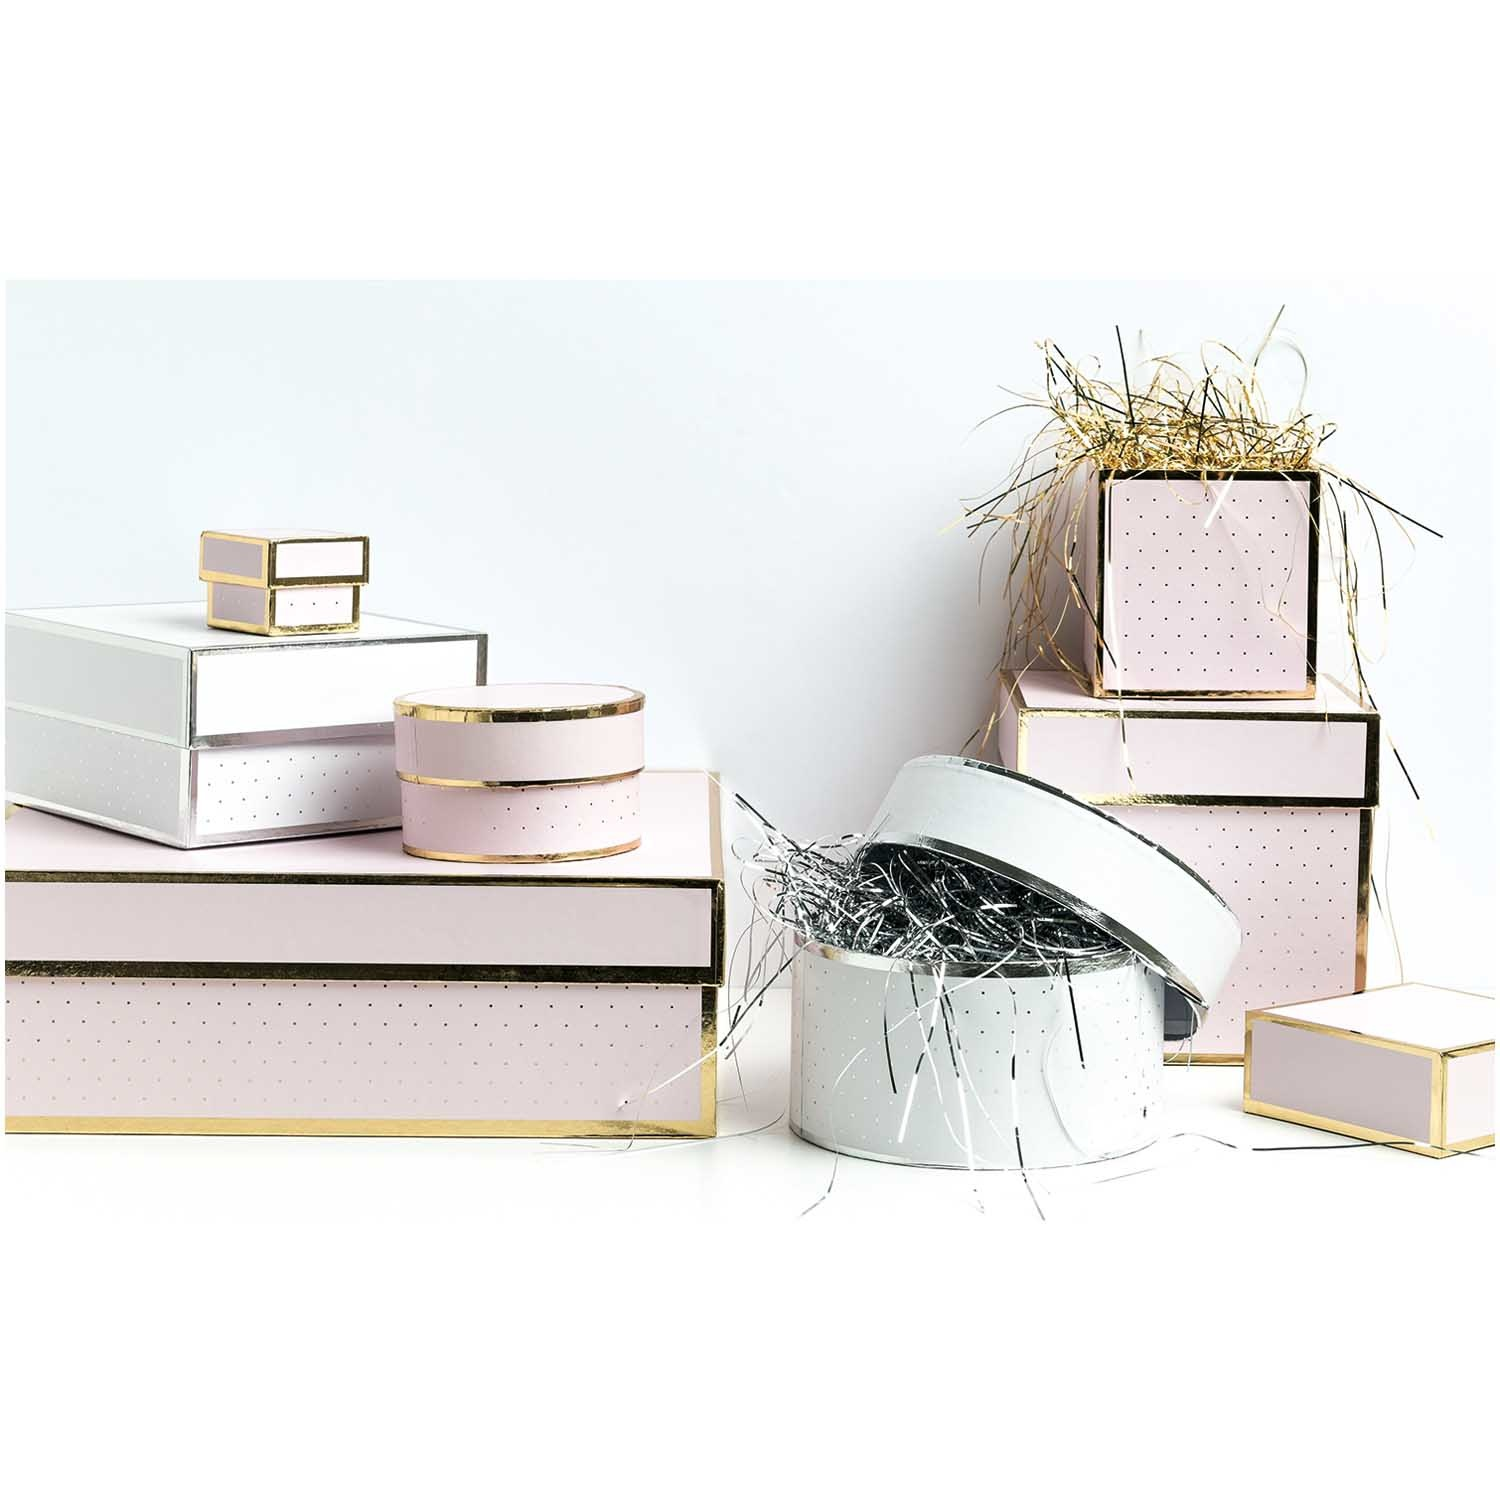 Rico NAY GIFT BOX, WHITE, SQUARE, FSC RECYCLED 30X30X10 CM